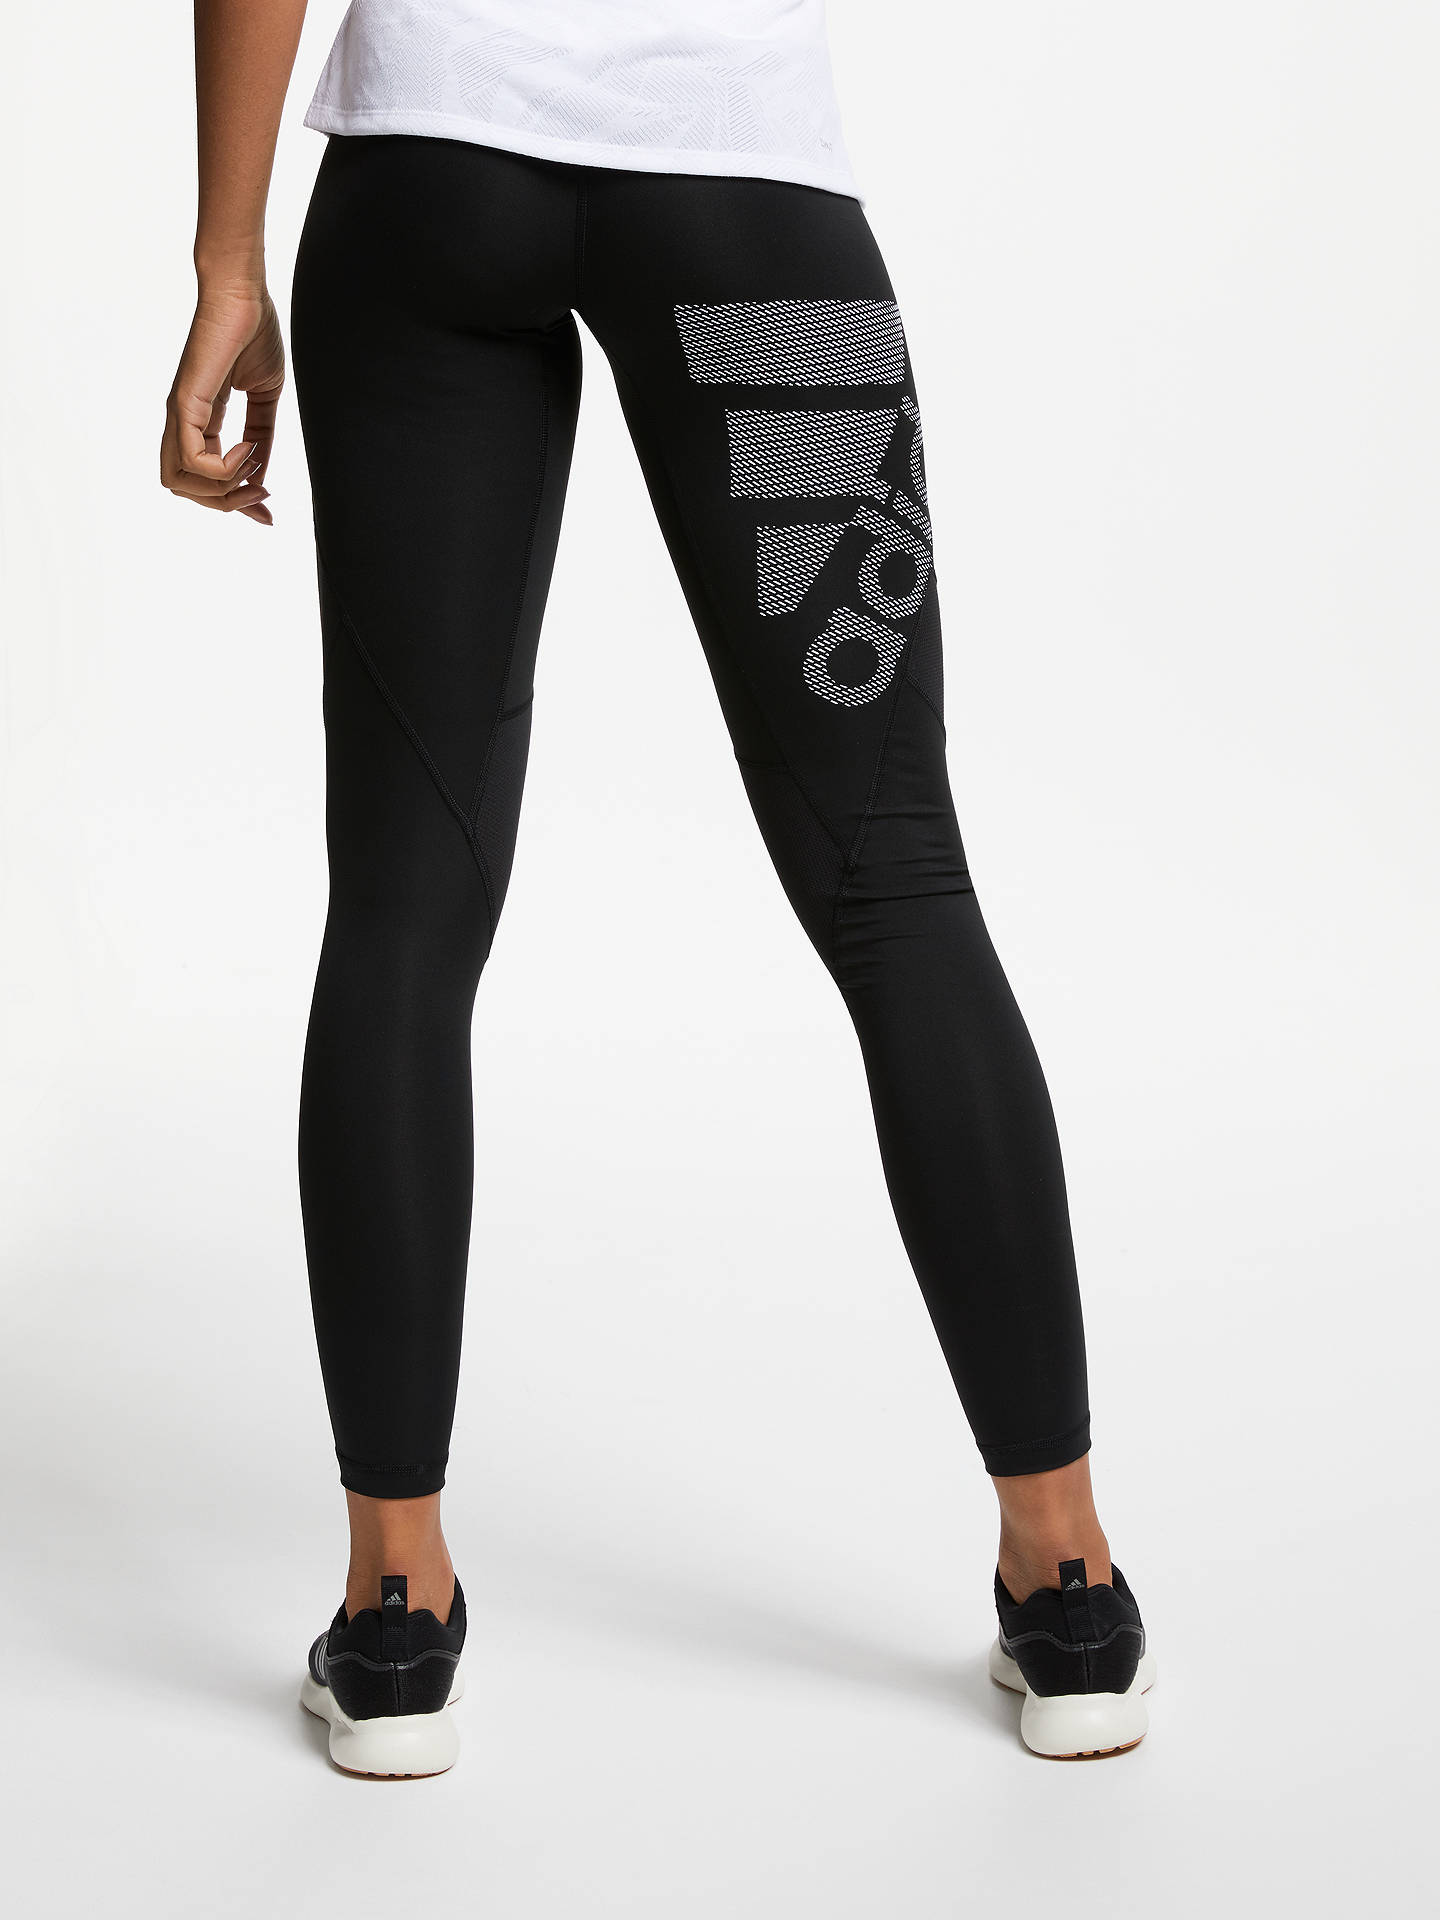 Buyadidas Ask SPR Training Tights, Black, XS Online at johnlewis.com